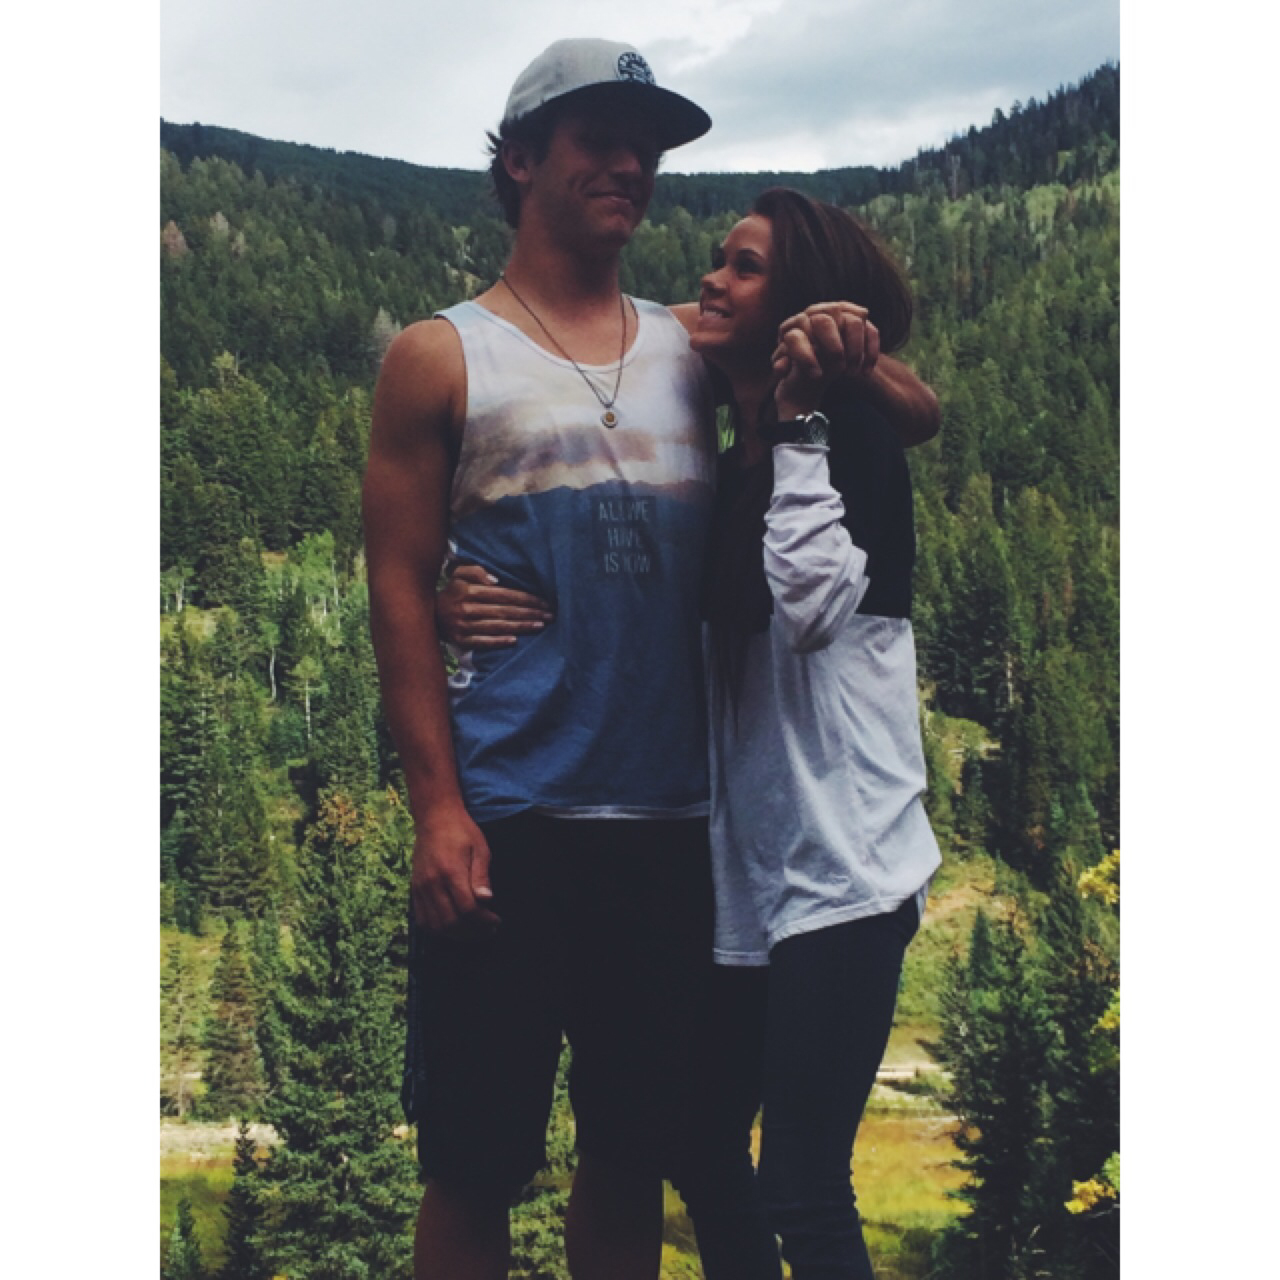 boyfriend, canyon, couples, dating, girlfriend, love, relationships, teen love, utah, relationship goals